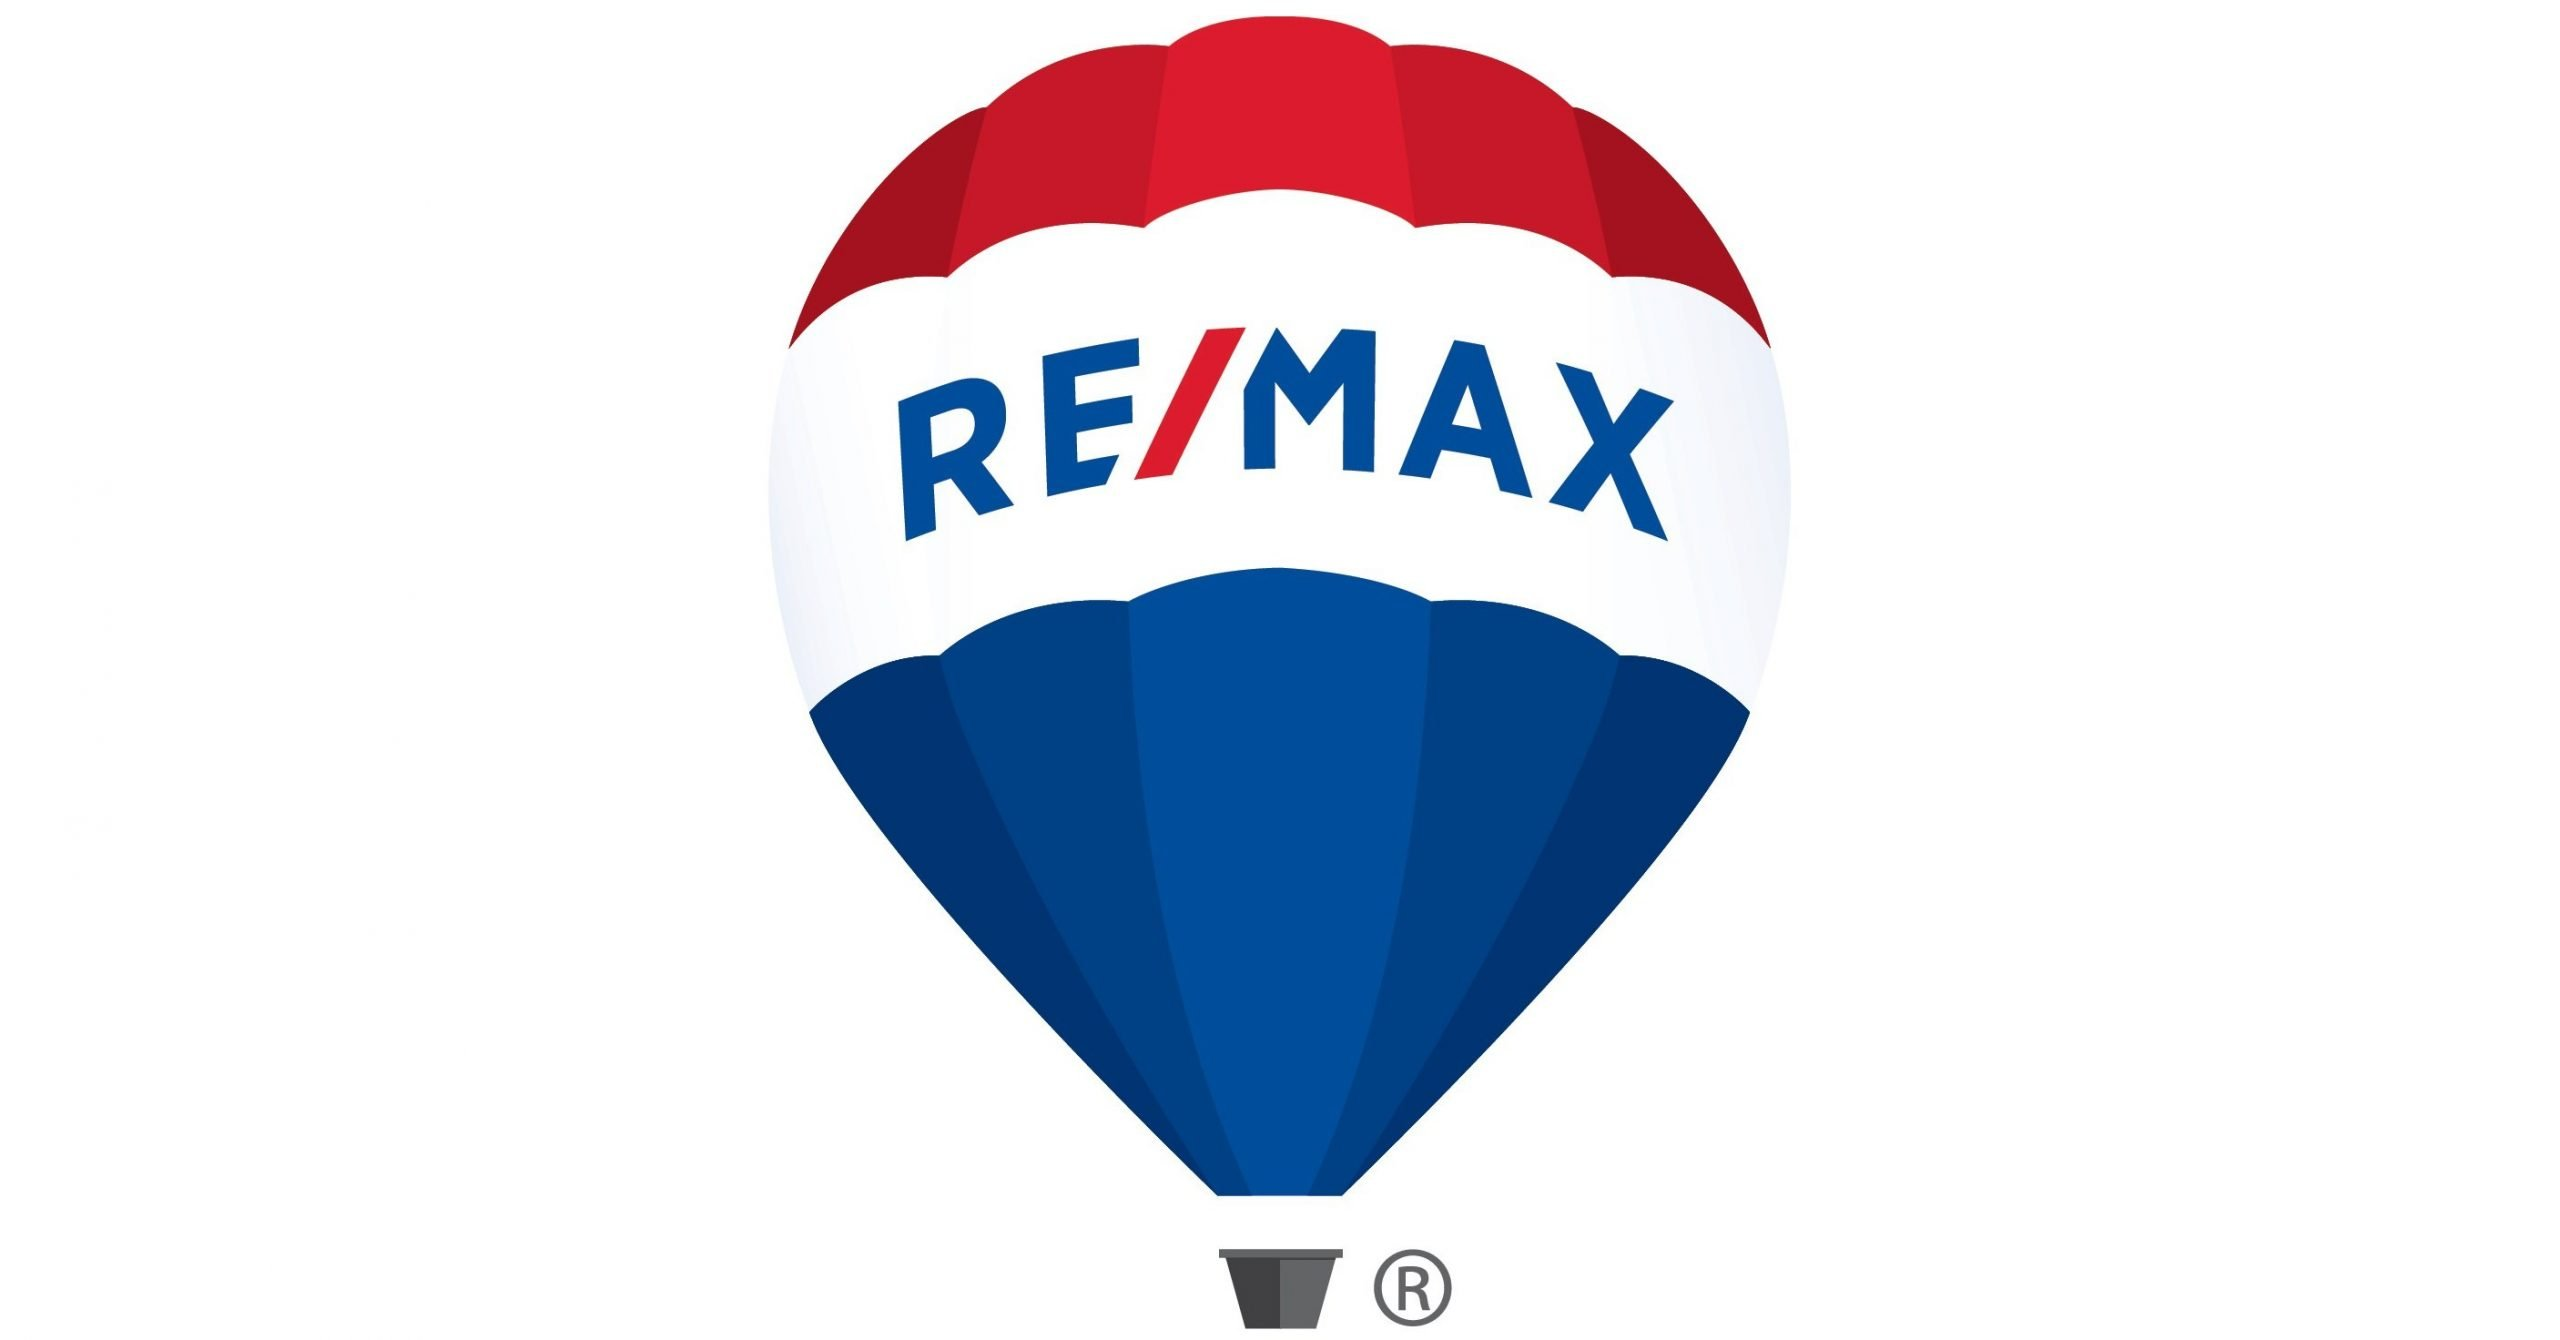 Remax